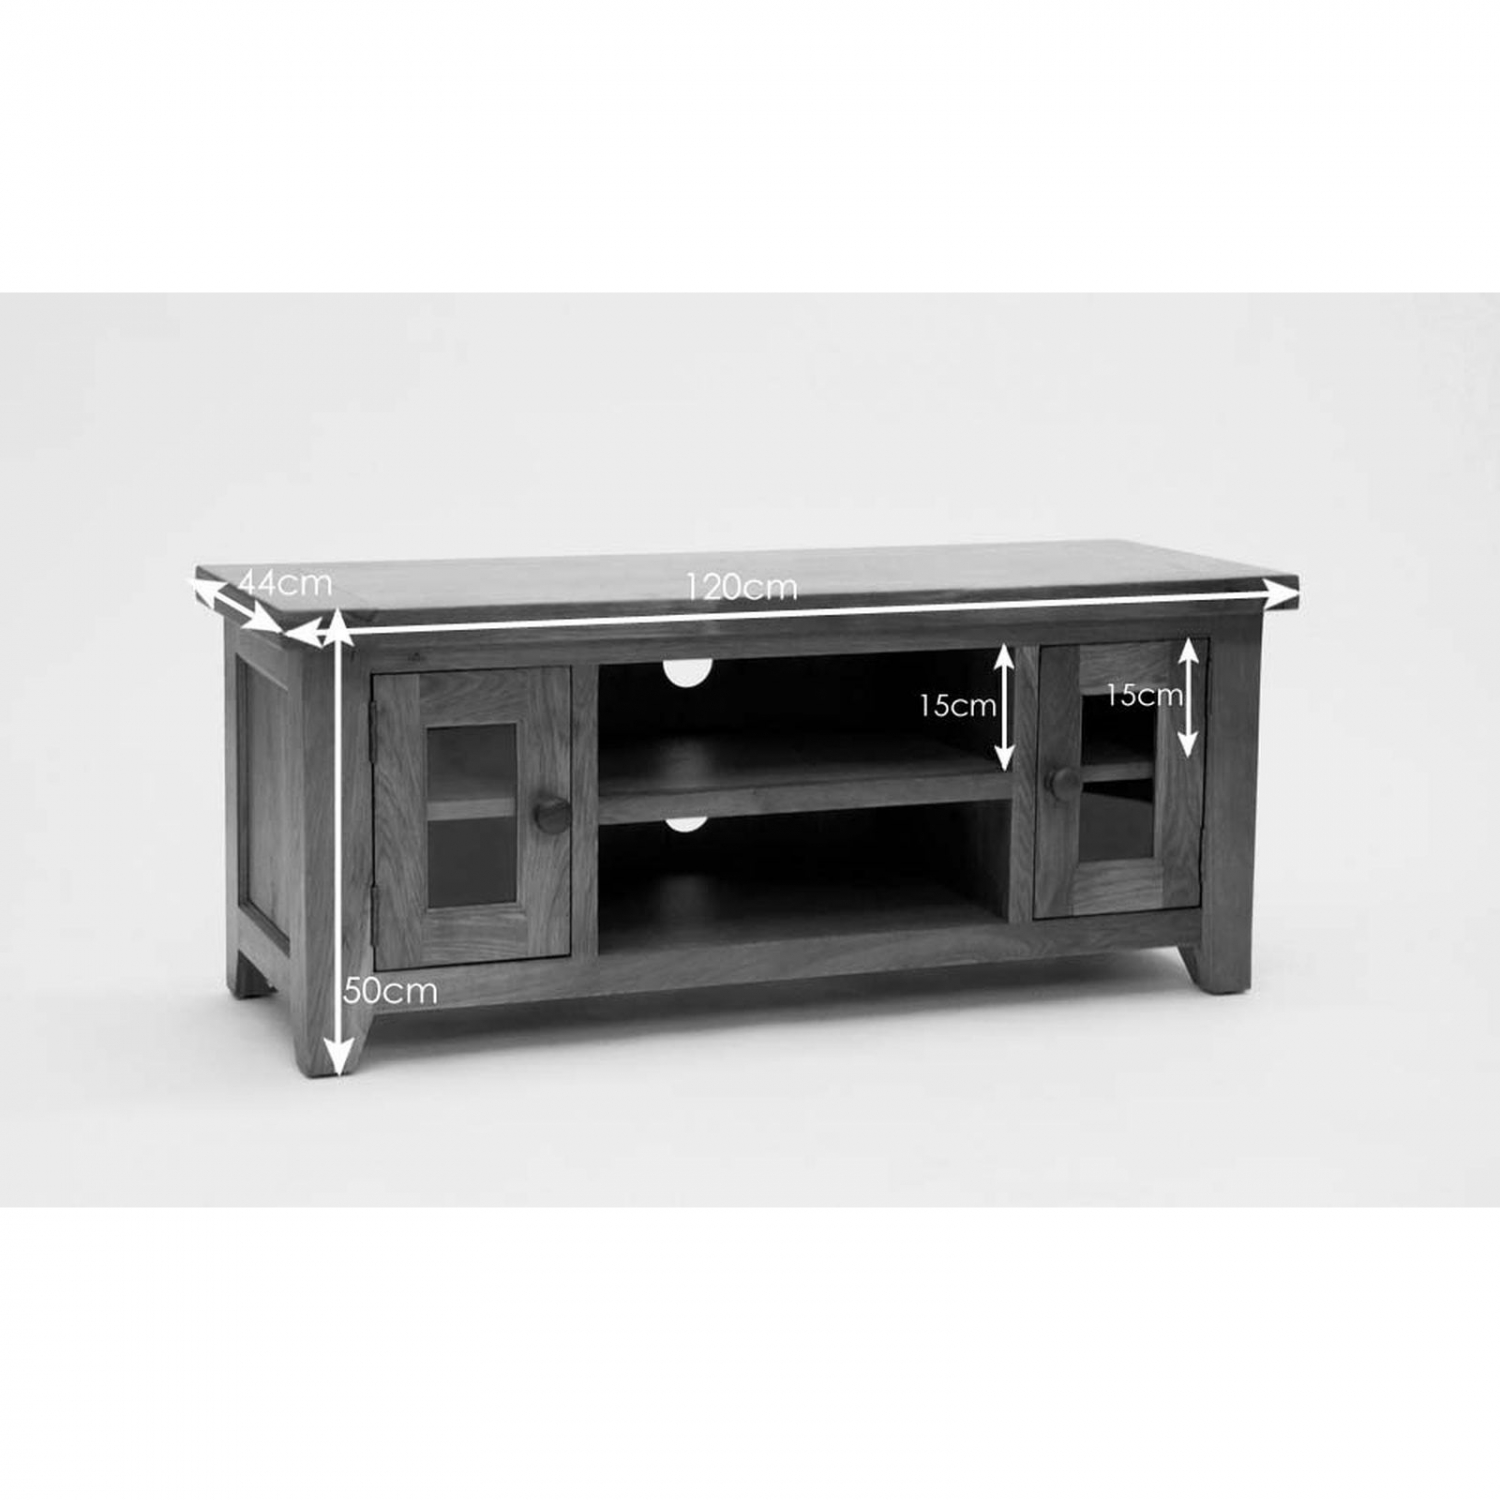 Balmoral Oak Furniture Large Tv Television Cabinet Stand Unit With